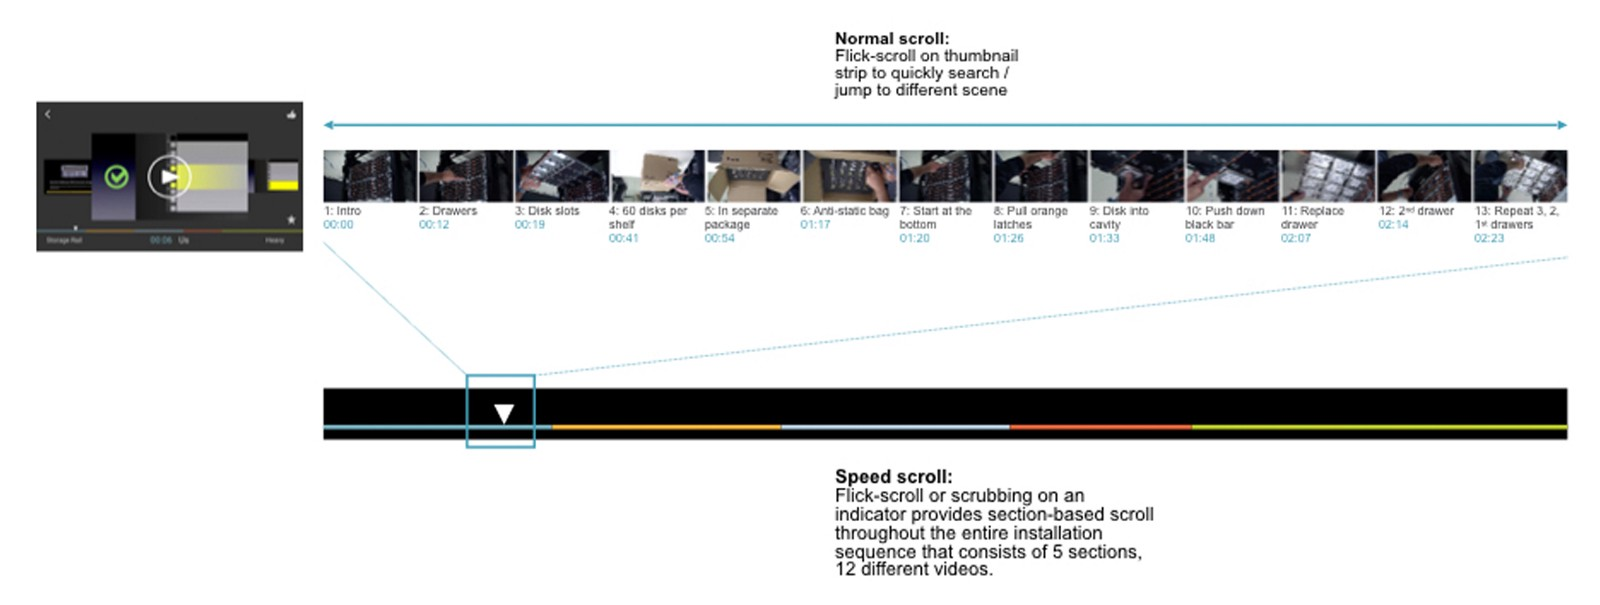 A diagram explaining landscape normal scroll and speed scroll via progress bar.